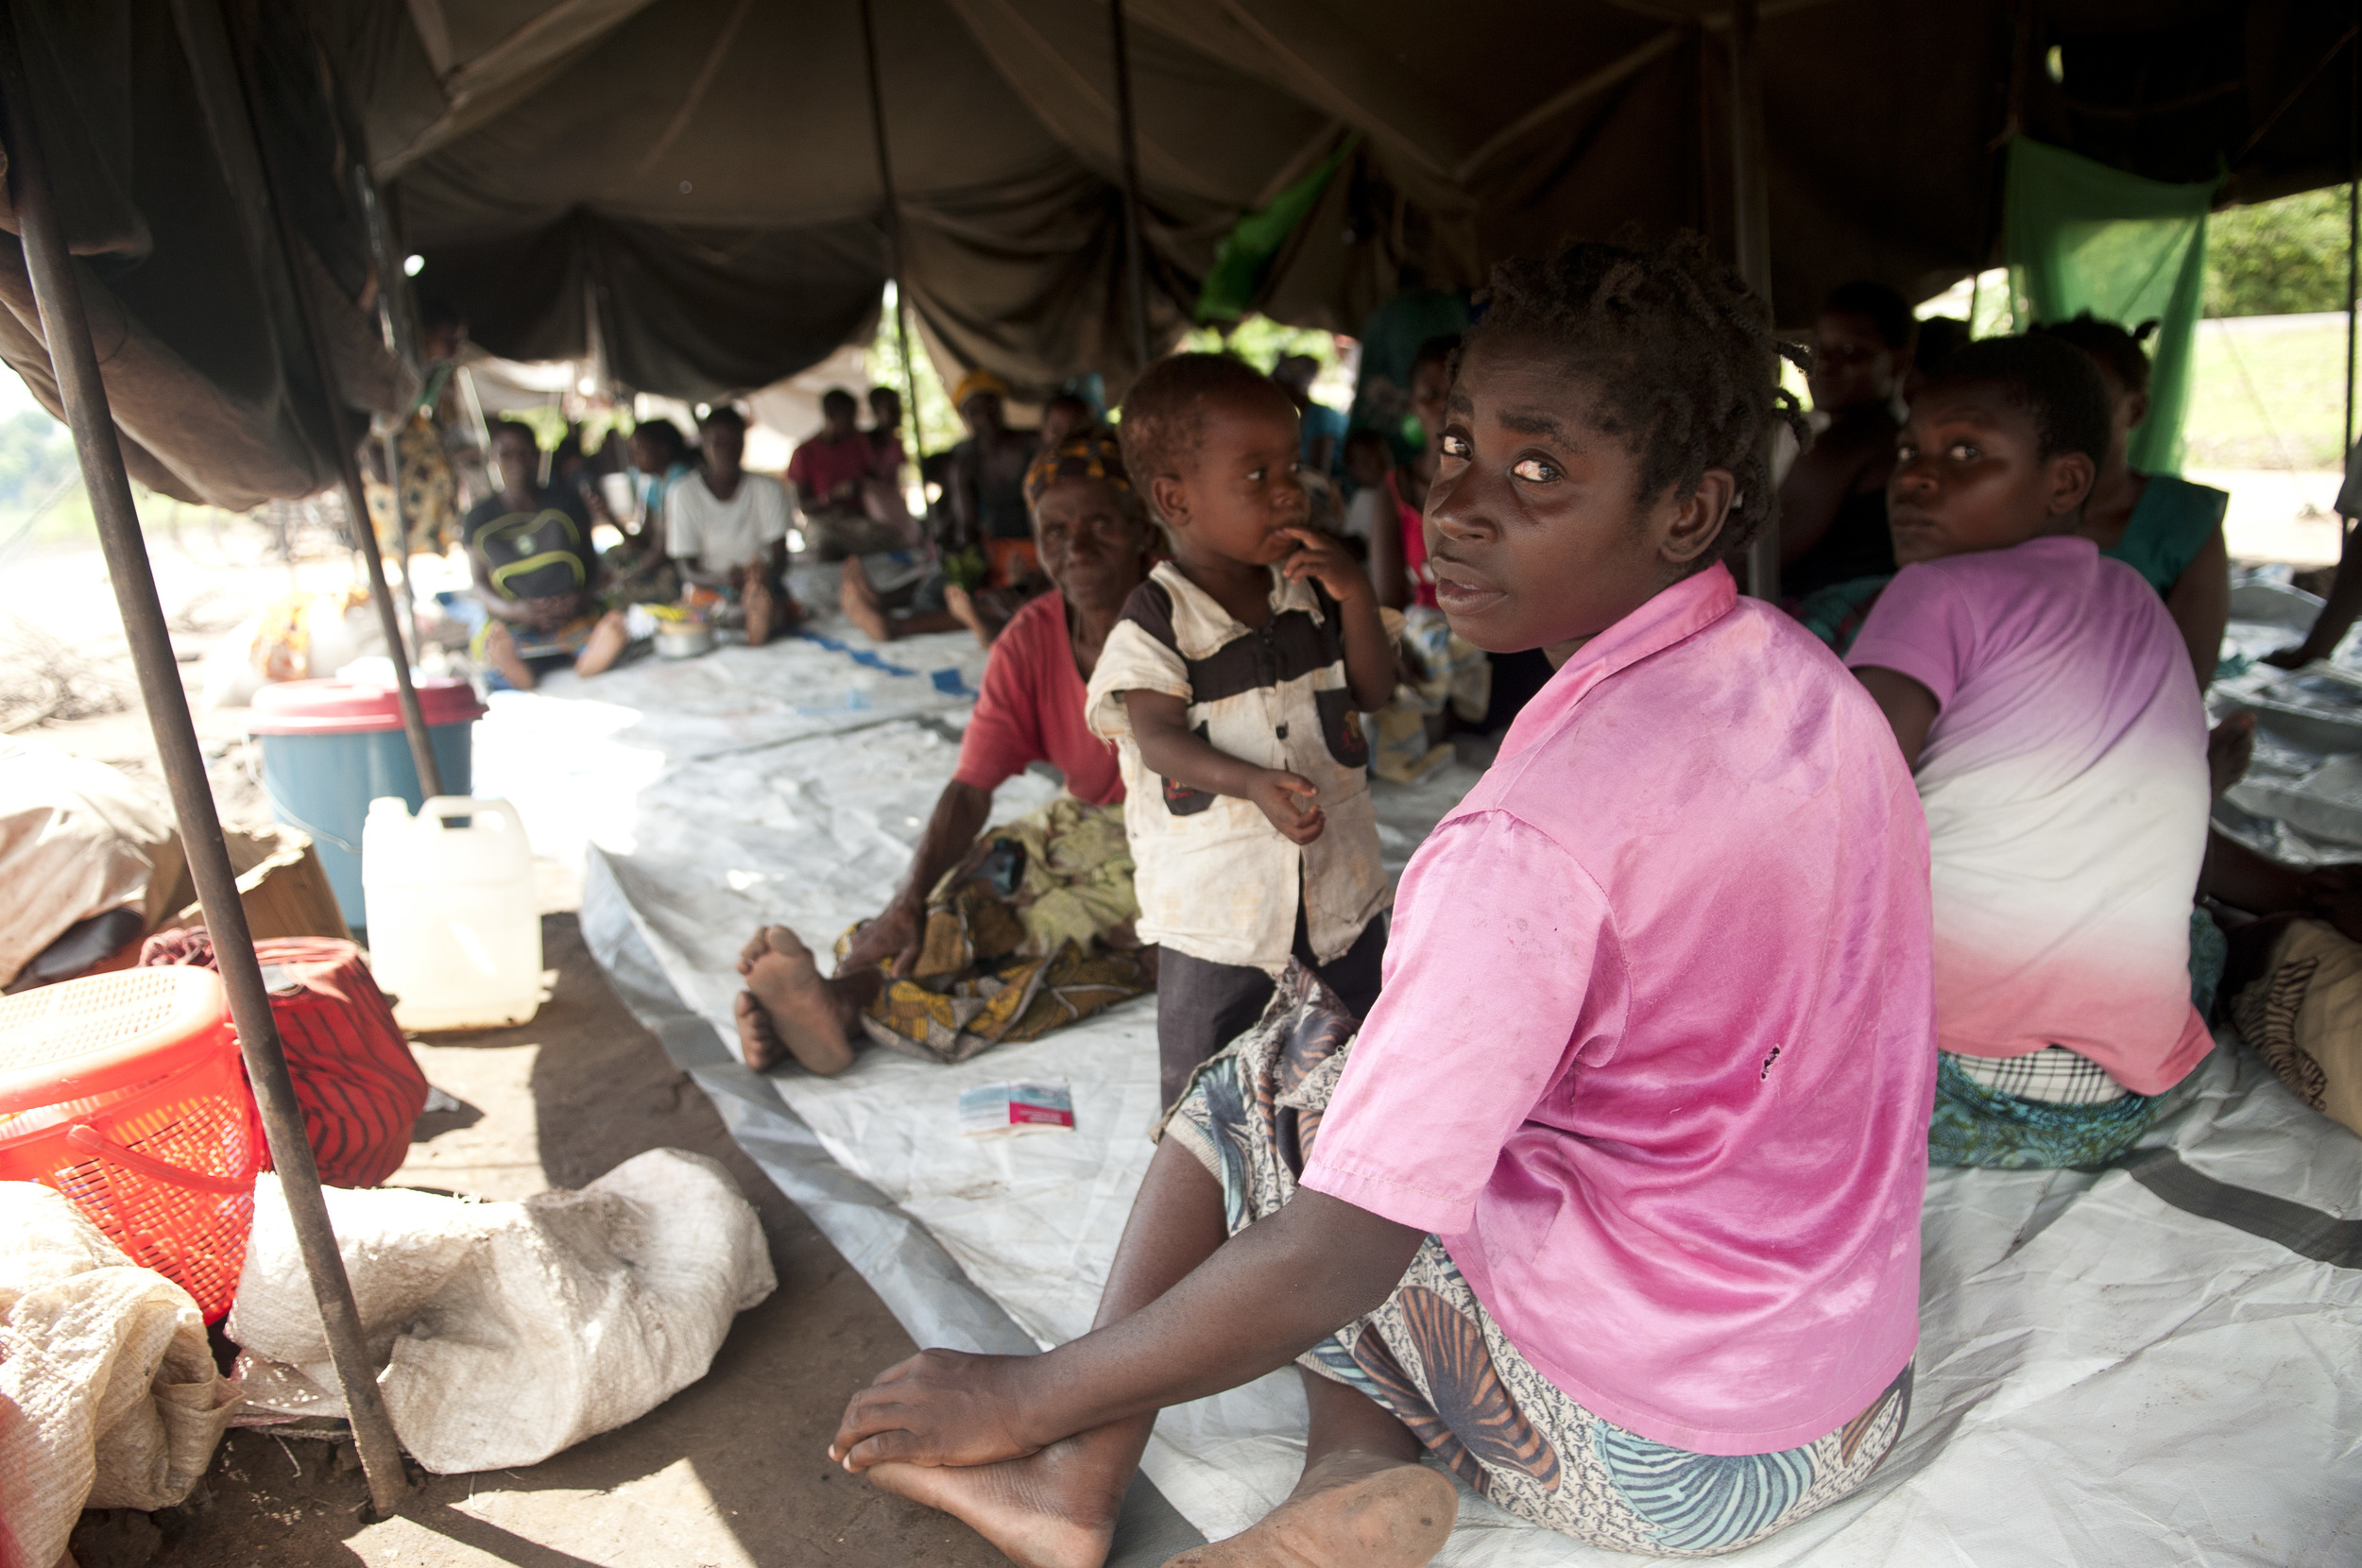 Flood victims seek shelter in tents at Sekani 1 camp in Chikwawa district.